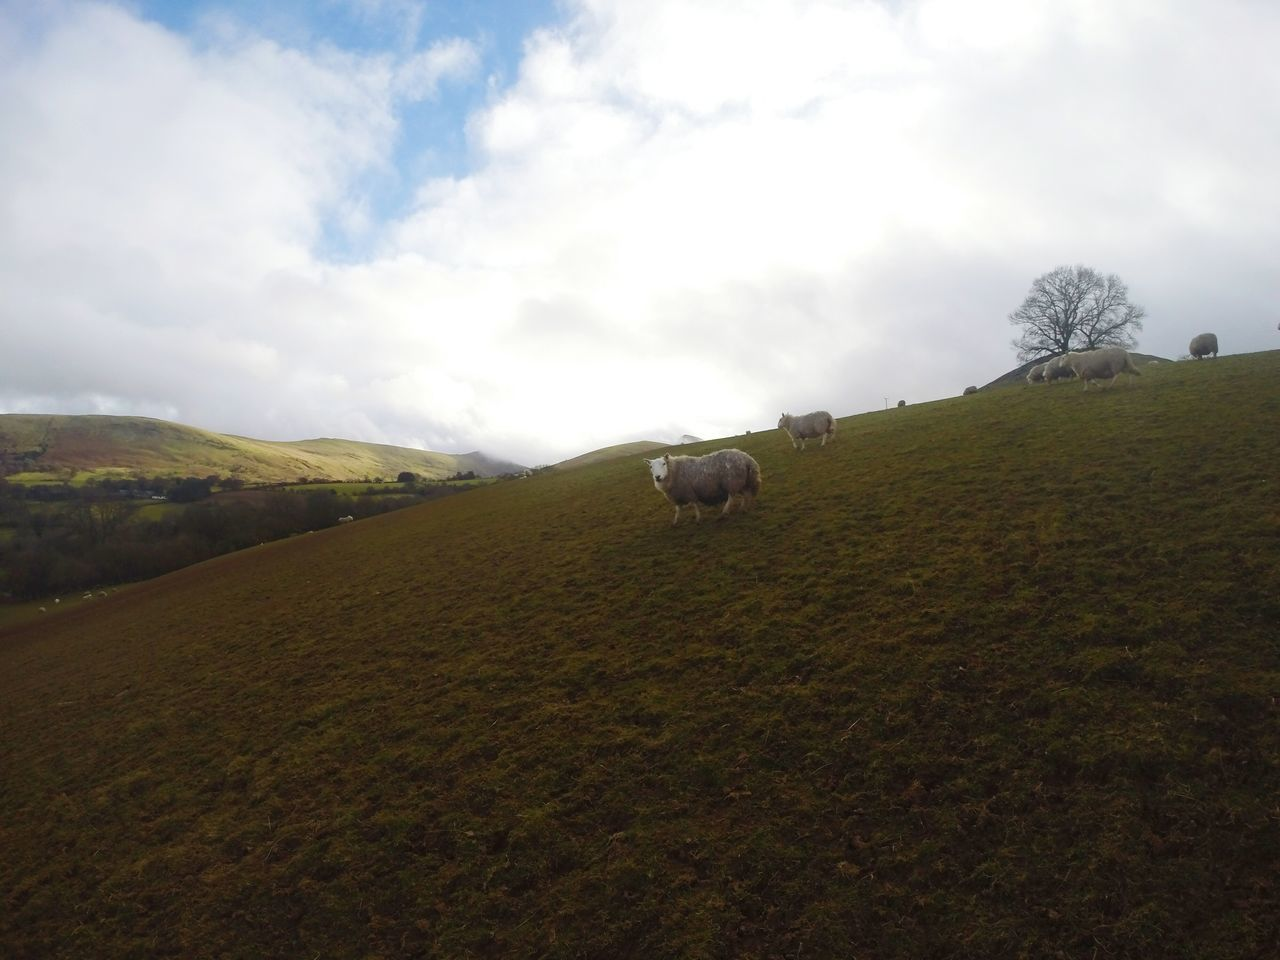 Landscape Nature Scenics Agriculture Beauty In Nature No People Sky Sunday Walk Backgrounds Walking Pen Y Fan Mountain Panoramic Photography Tranquility Pen Y Fan Panoramic View Beauty In Nature Outdoors Mountain Sheep Farm Sheepfarm Wales